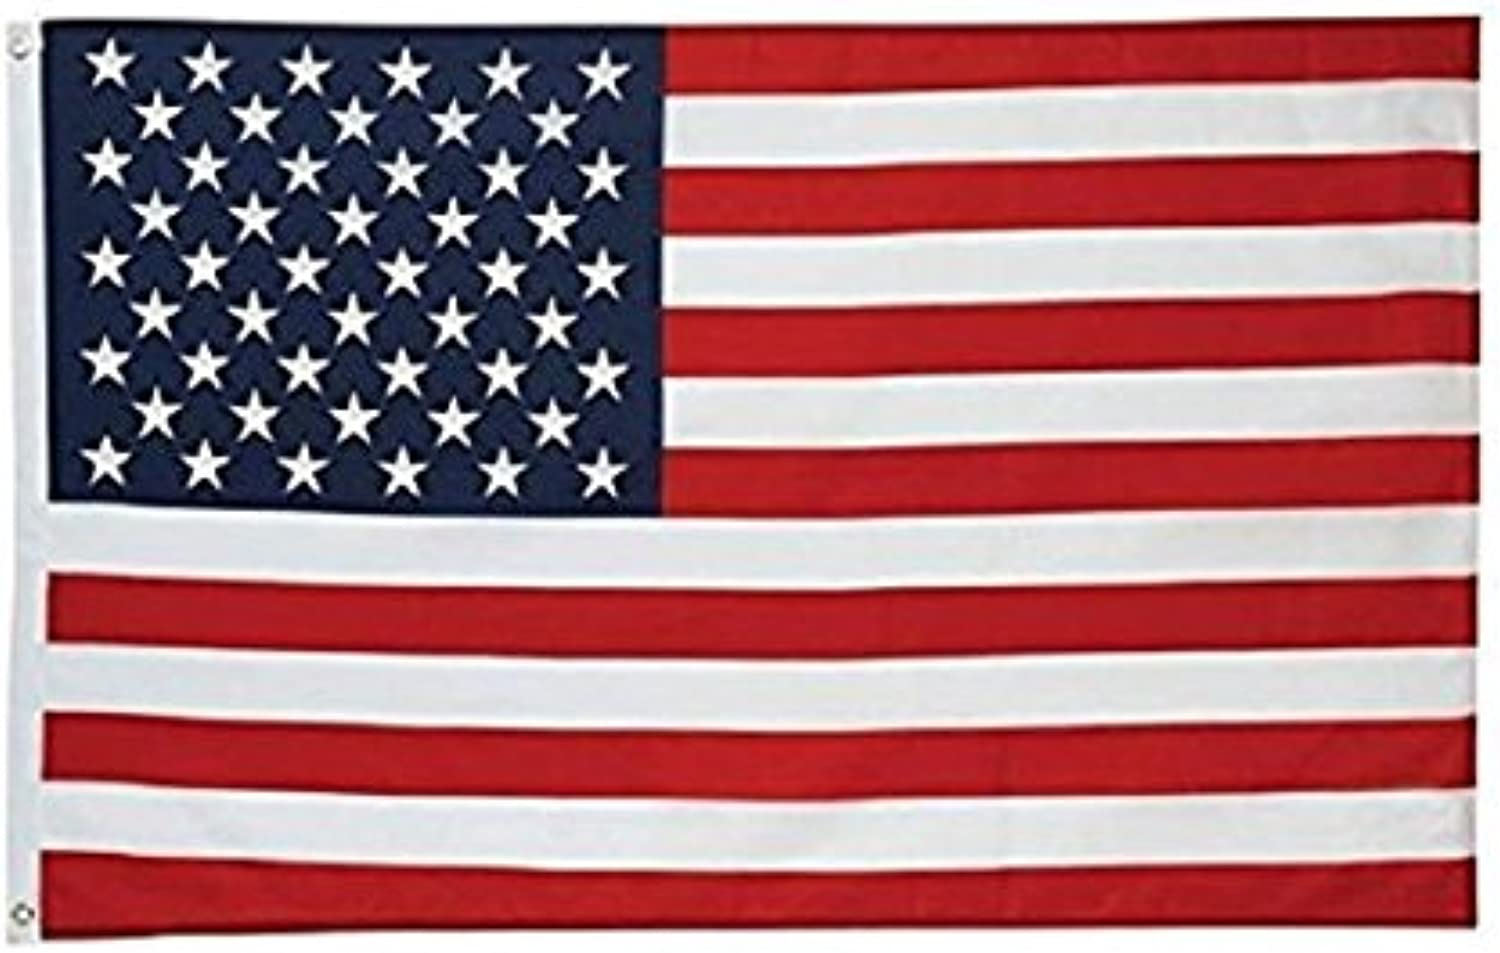 Flagpole To Go 3Foot x 5Foot Screened Nylon US Flag